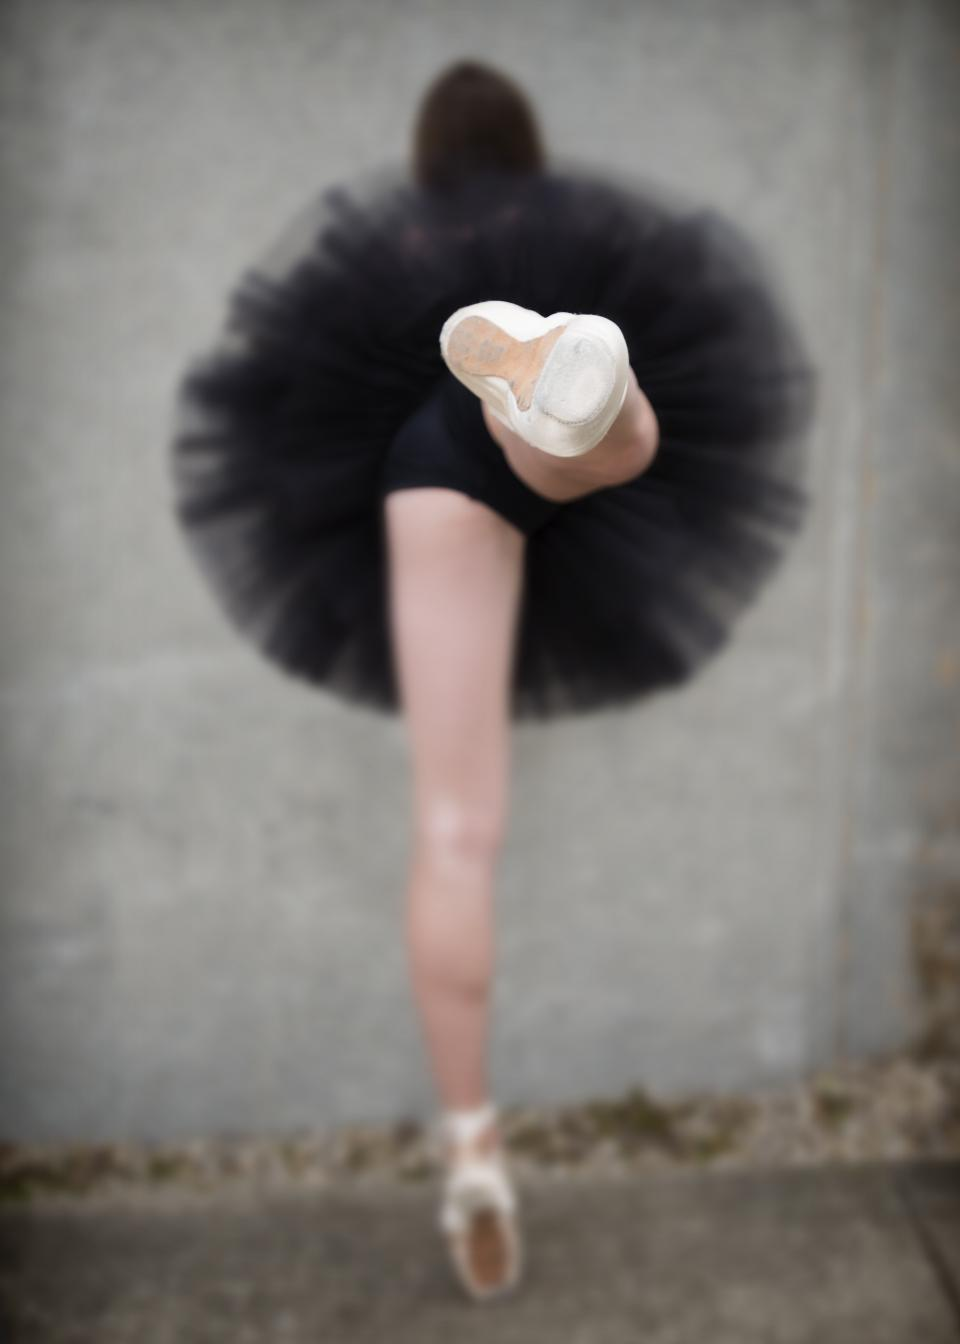 woman, girl, lady, people, dance, lift, leg, tutu, still, bokeh